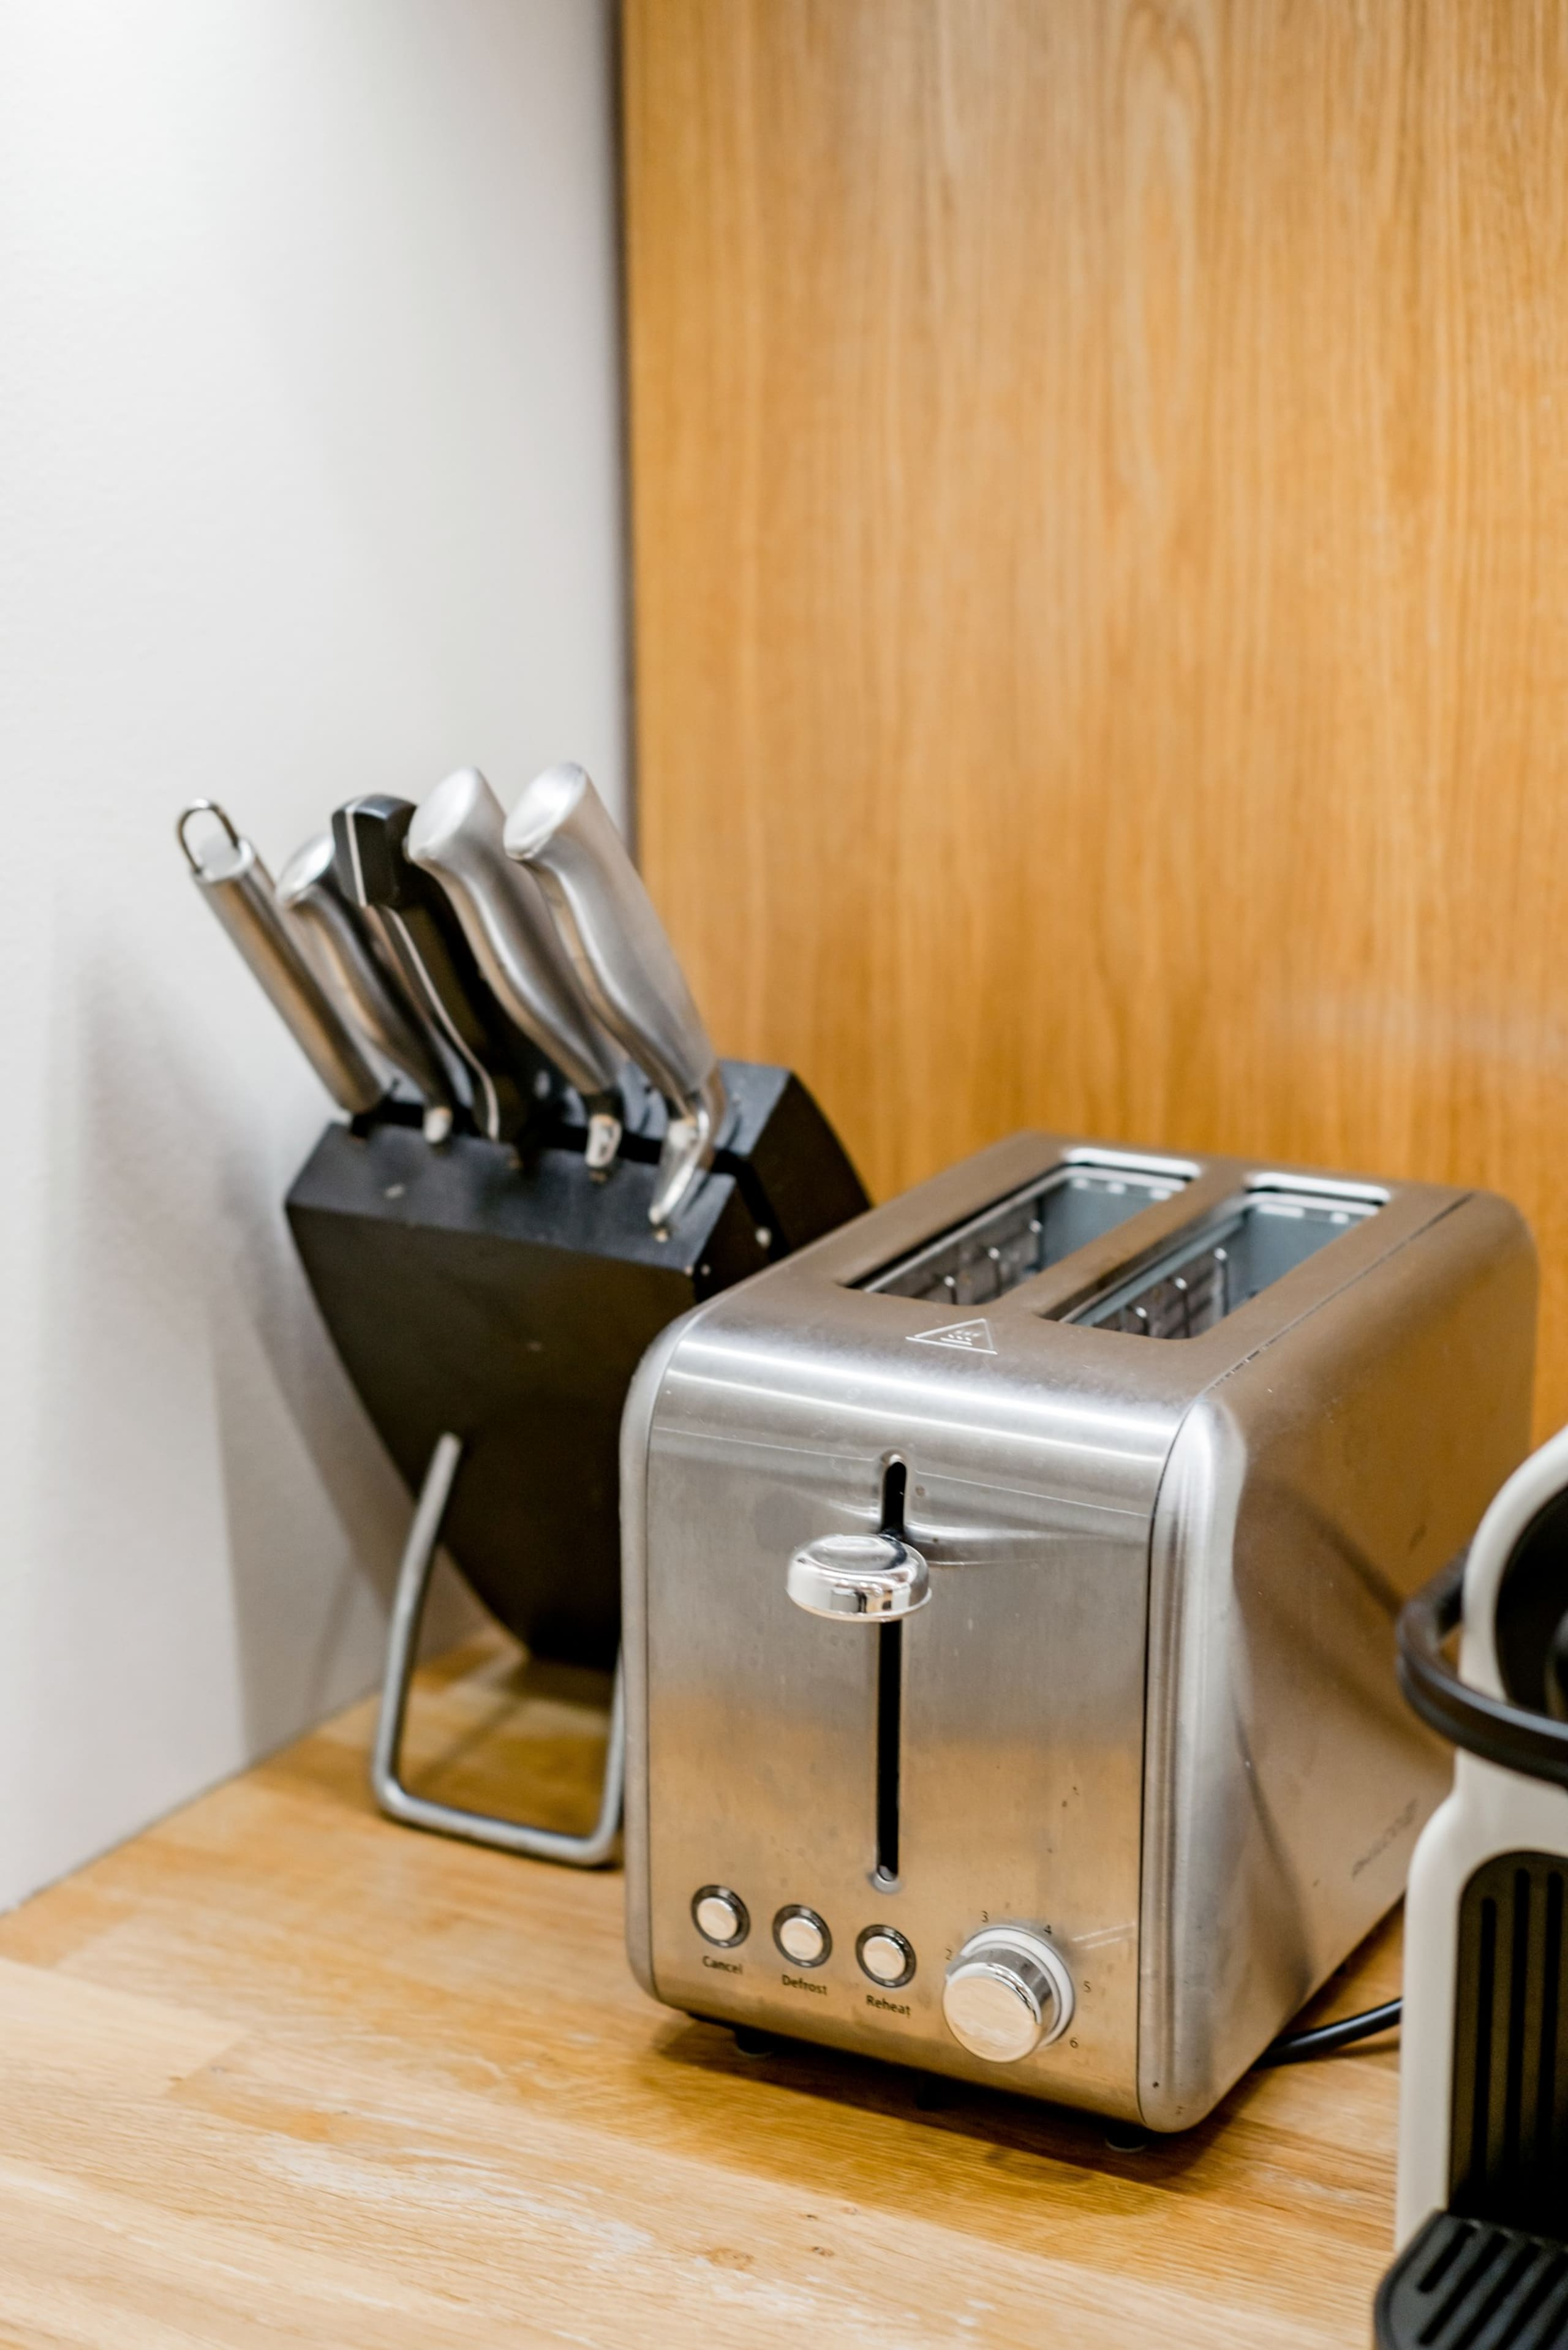 Nespresso coffee machine, toaster, kettle